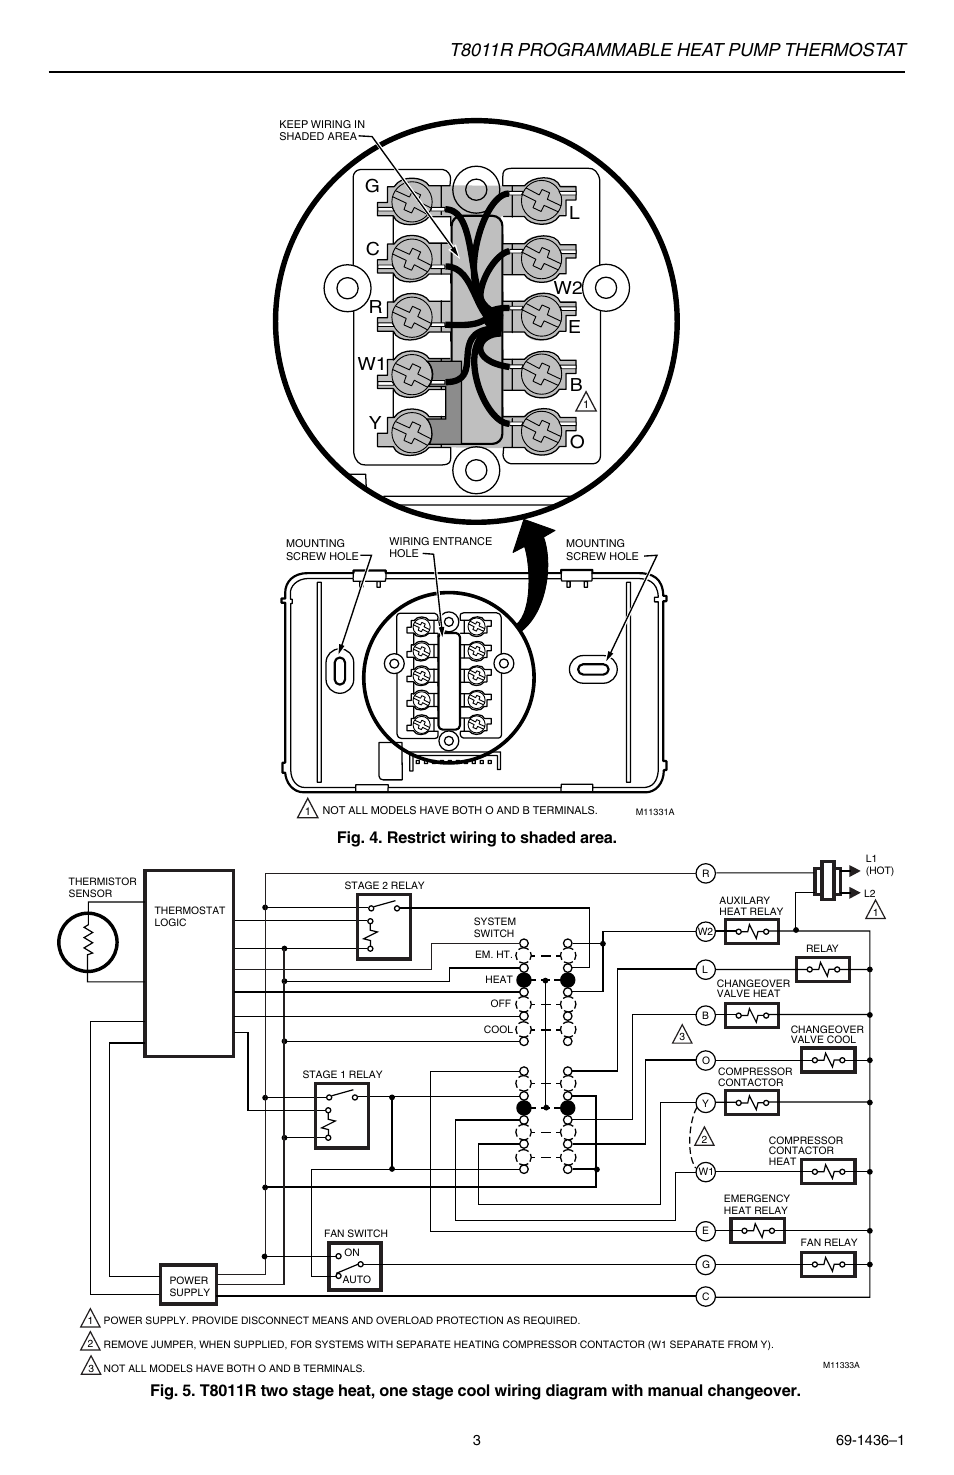 honeywell rth wiring diagram honeywell image wiring diagram for honeywell heat pump thermostat smartdraw diagrams on honeywell rth6450 wiring diagram